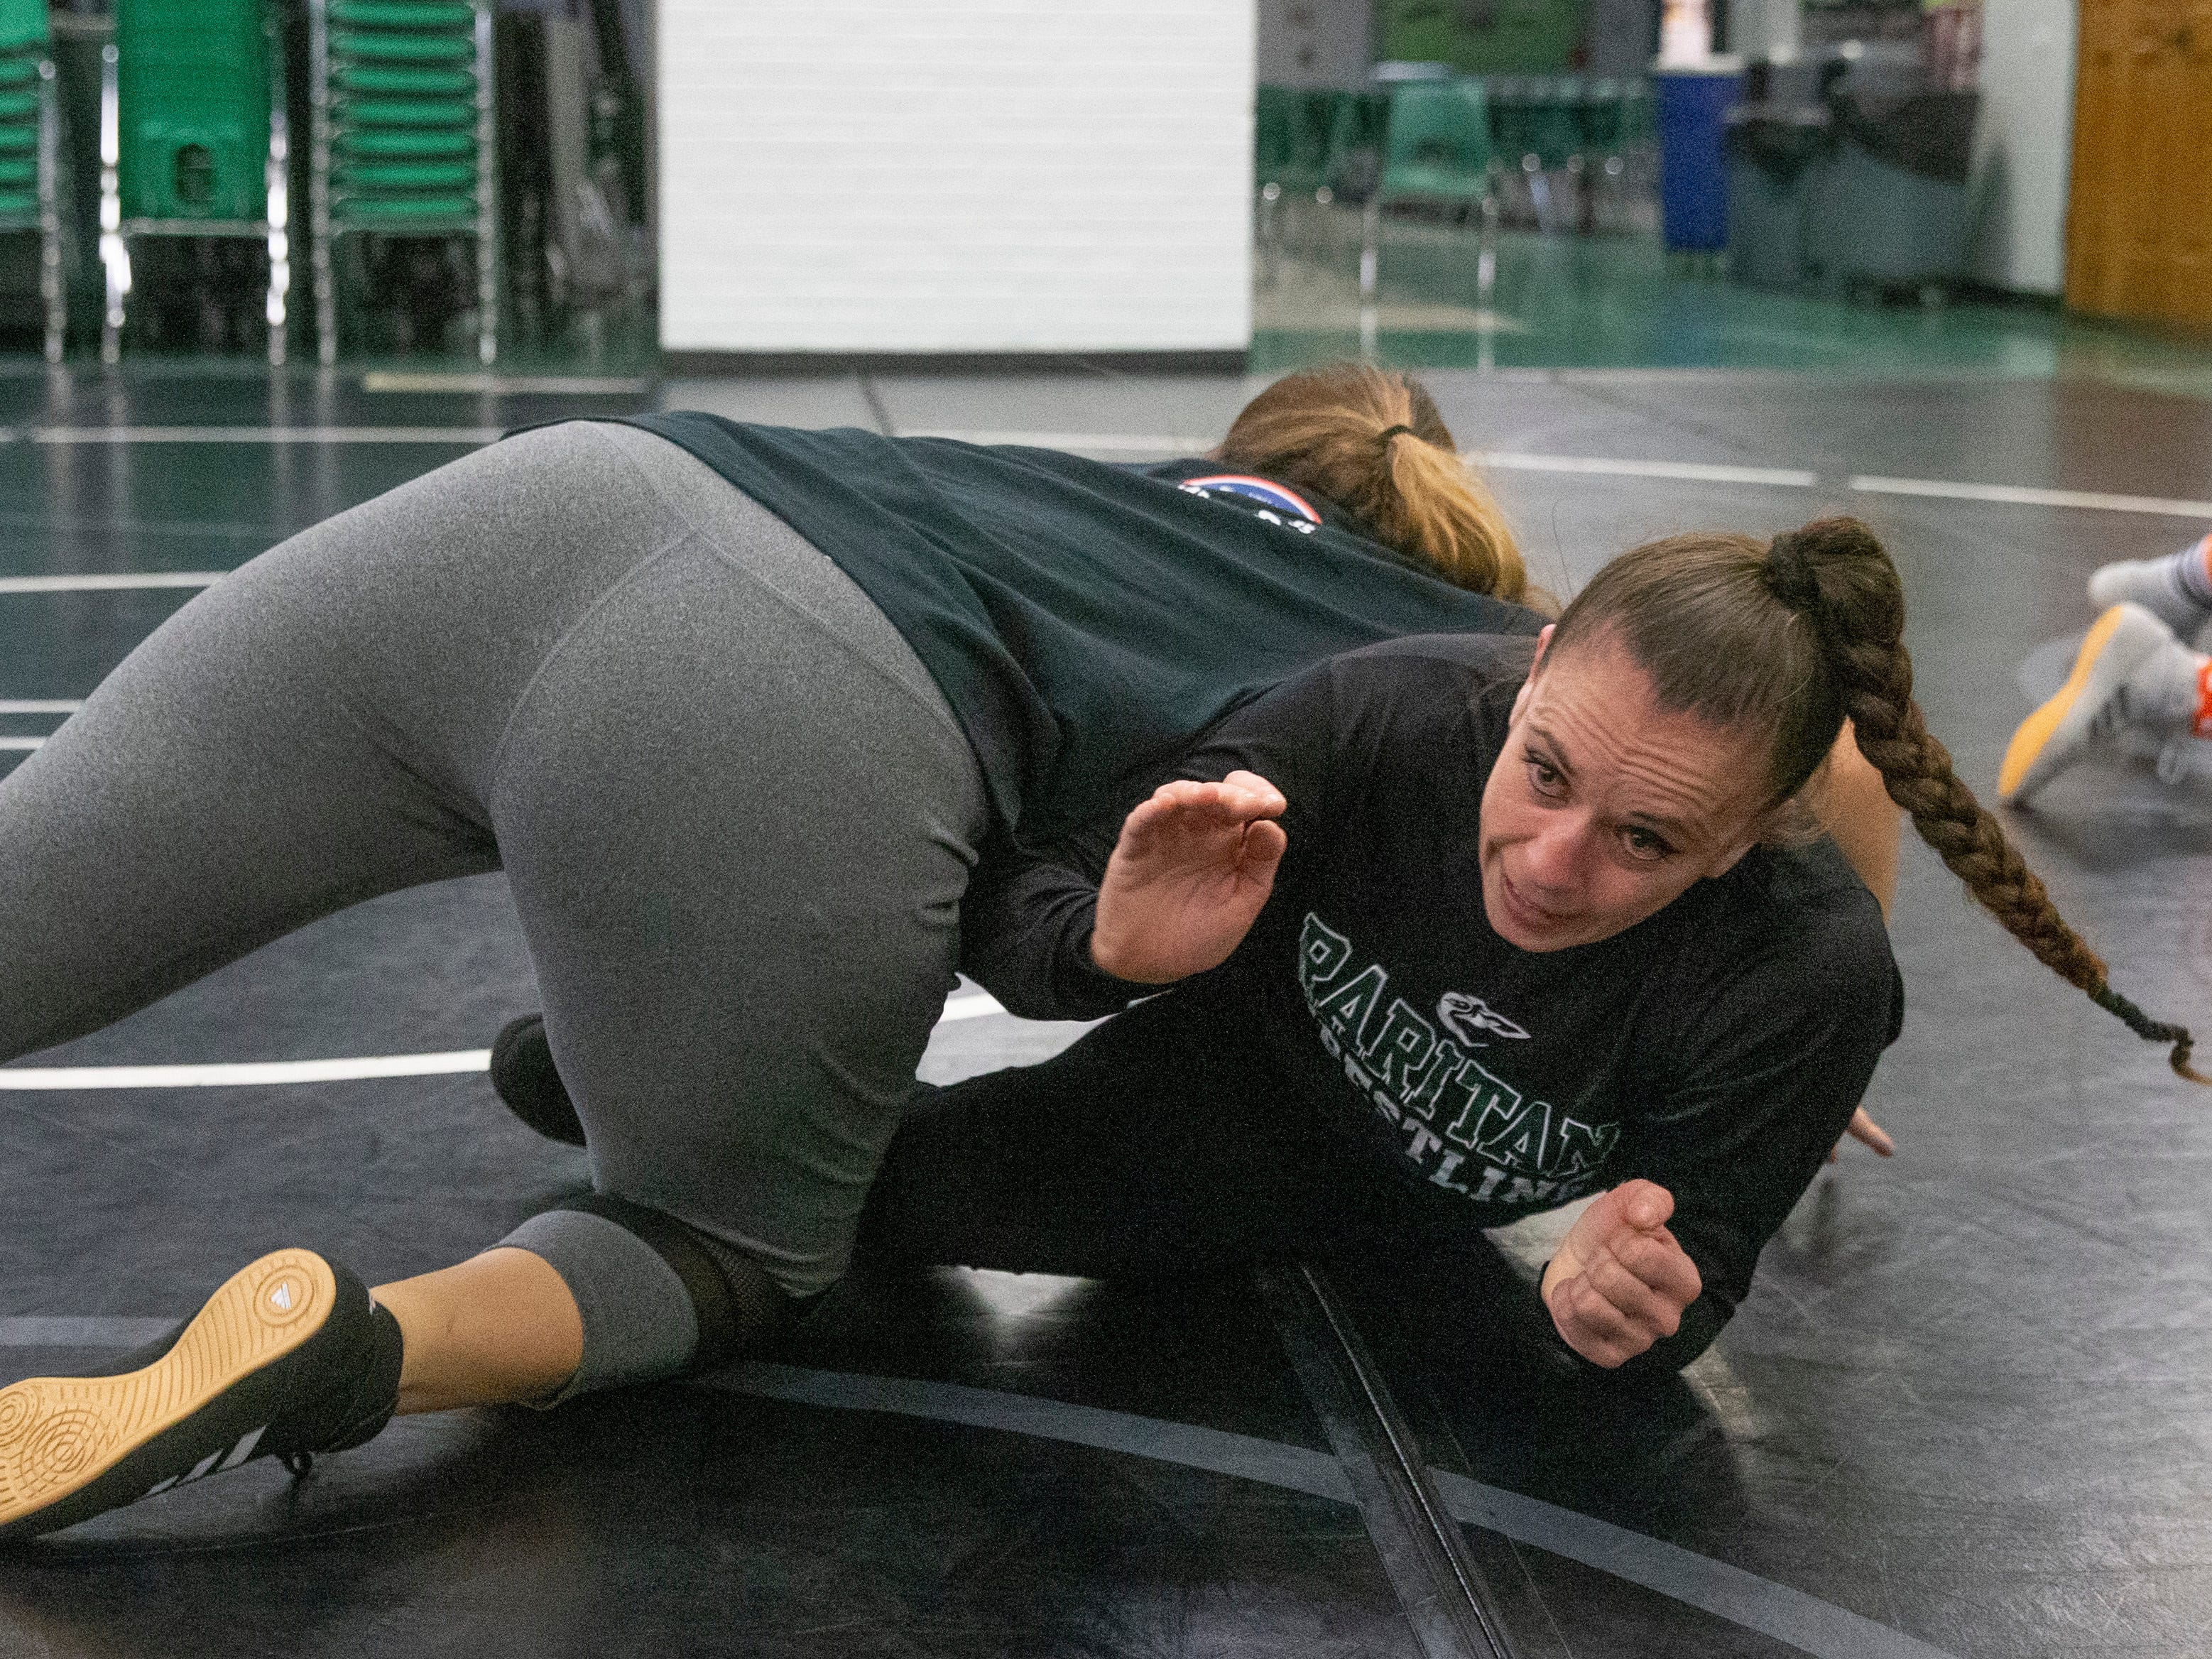 Girls Wrestling Coach Melissa Gardner works with one of the girls on moves. NJSIAA is offering wrestling for girls this year and they will participate in an all girls tournament at the end of the season. Raritan High School Wrestling is fielding nearly a  full girls team this year. While girls mostly practice separately from the boys, they are in a room next to the boys and frequent coaching sessions happen in the boys room to teach moves.